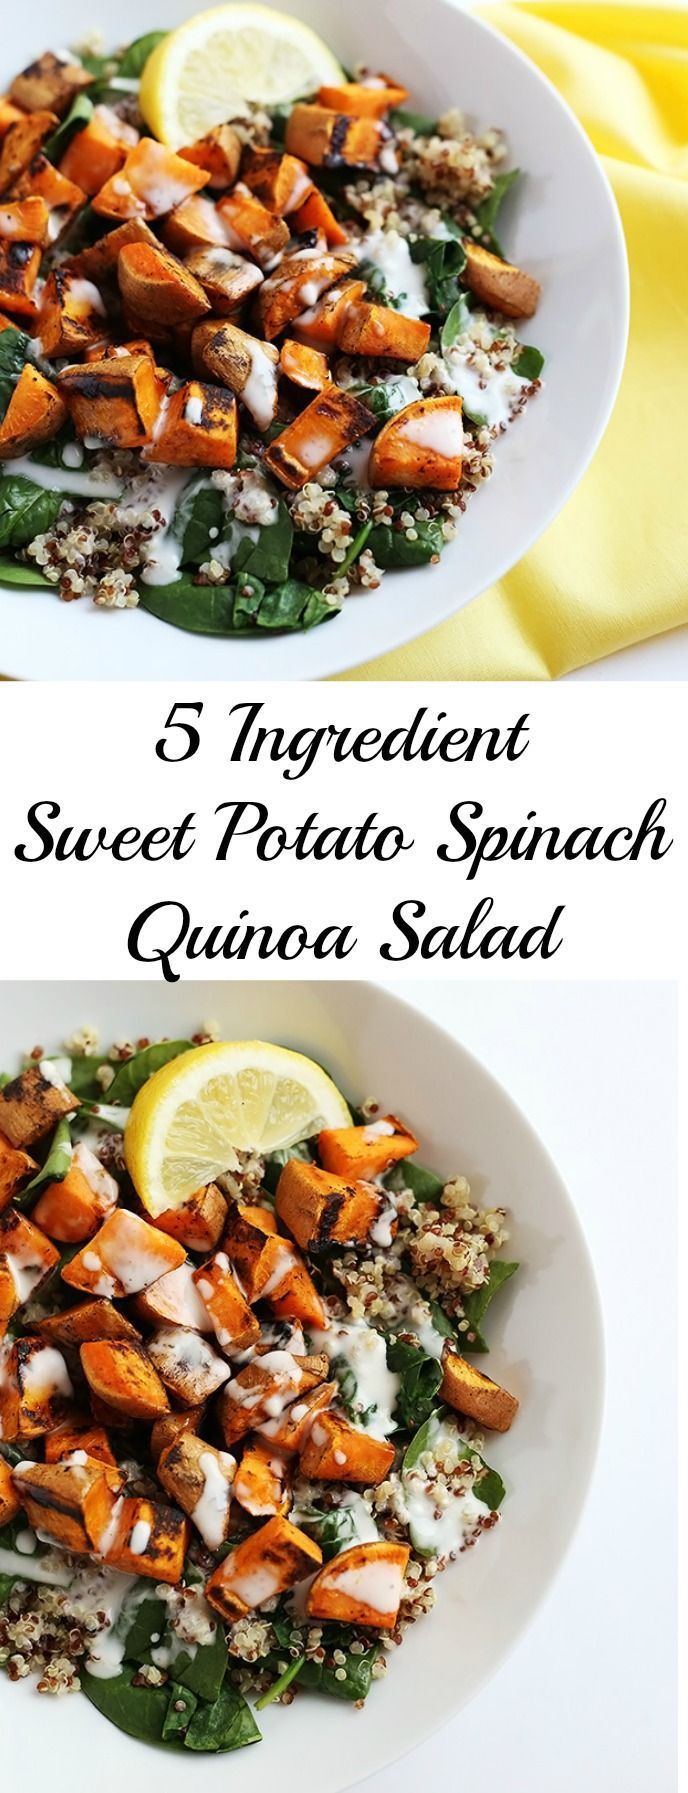 Ingredient Sweet Potato Spinach Quinoa Salad This 5 Ingredient Sweet Potato Spinach Quinoa Salad is super simple to make, healthy and only requires 5 simple ingredients! Vegan and Gluten Free. / This 5 Ingredient Sweet Potato Spinach Quinoa Salad is super simple to make, healthy and only requires 5 simple ingredients! Vegan and Gluten Free. /